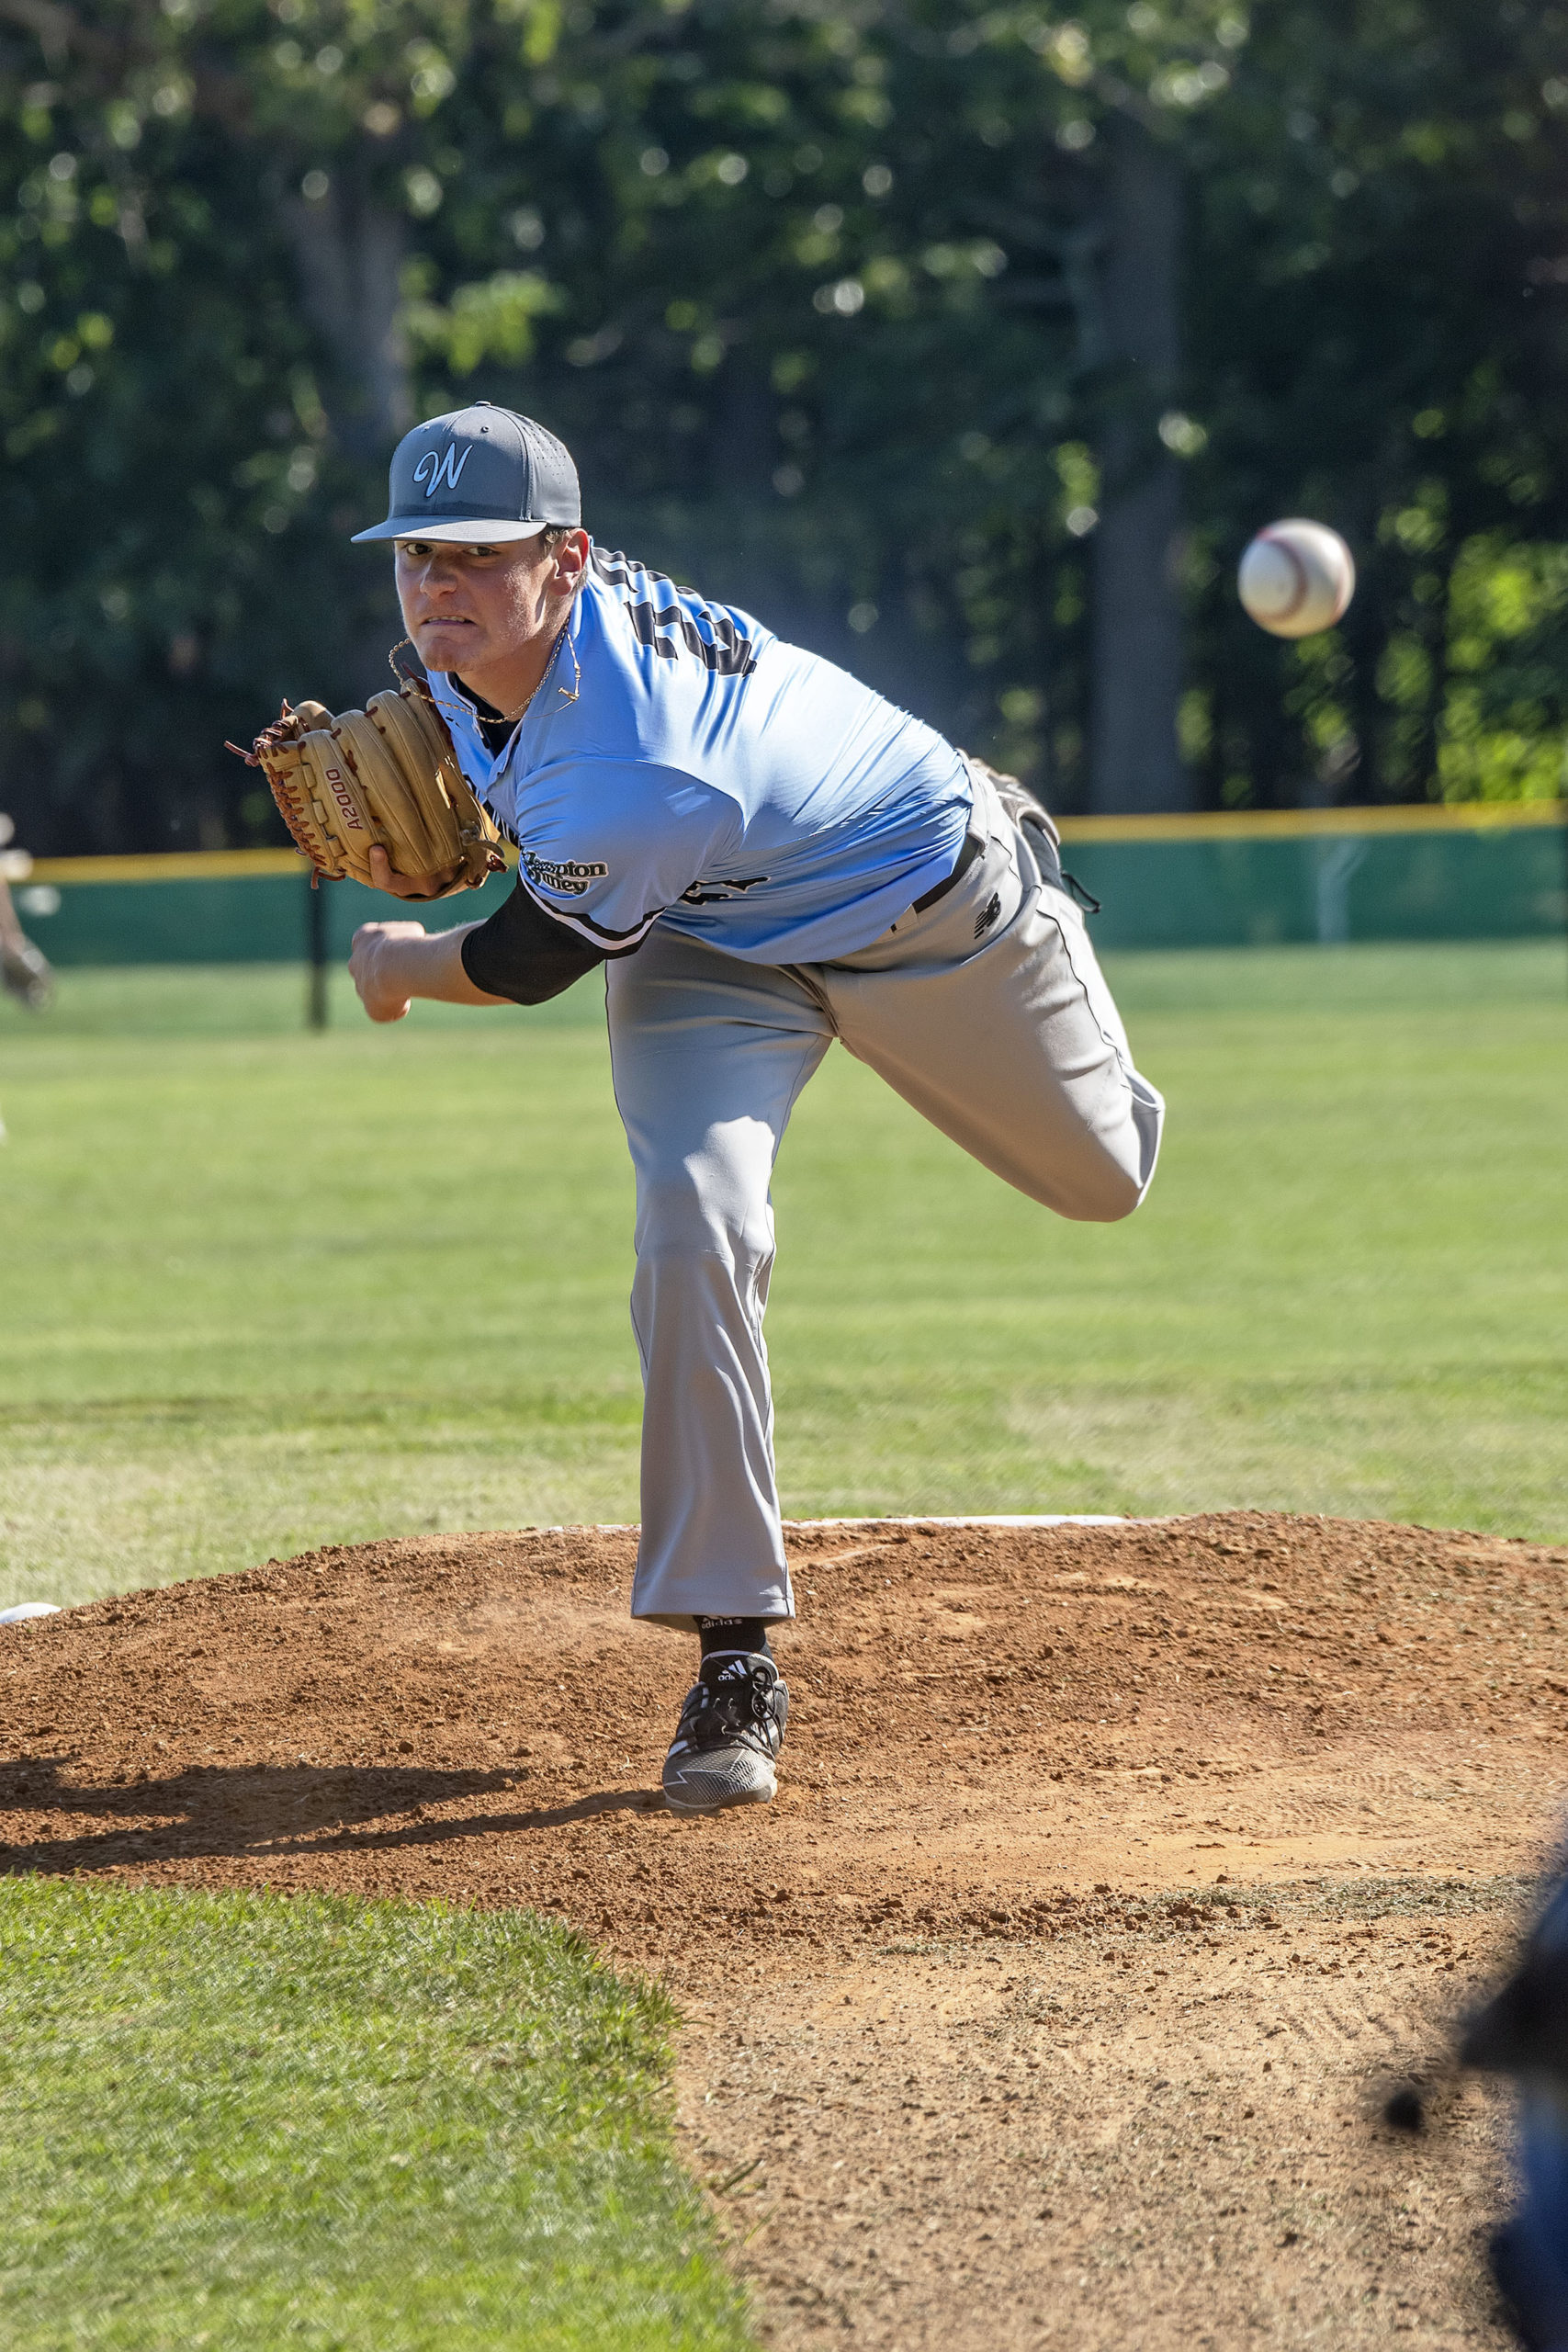 Pitcher Justin Sinibaldi started for the Whalers.